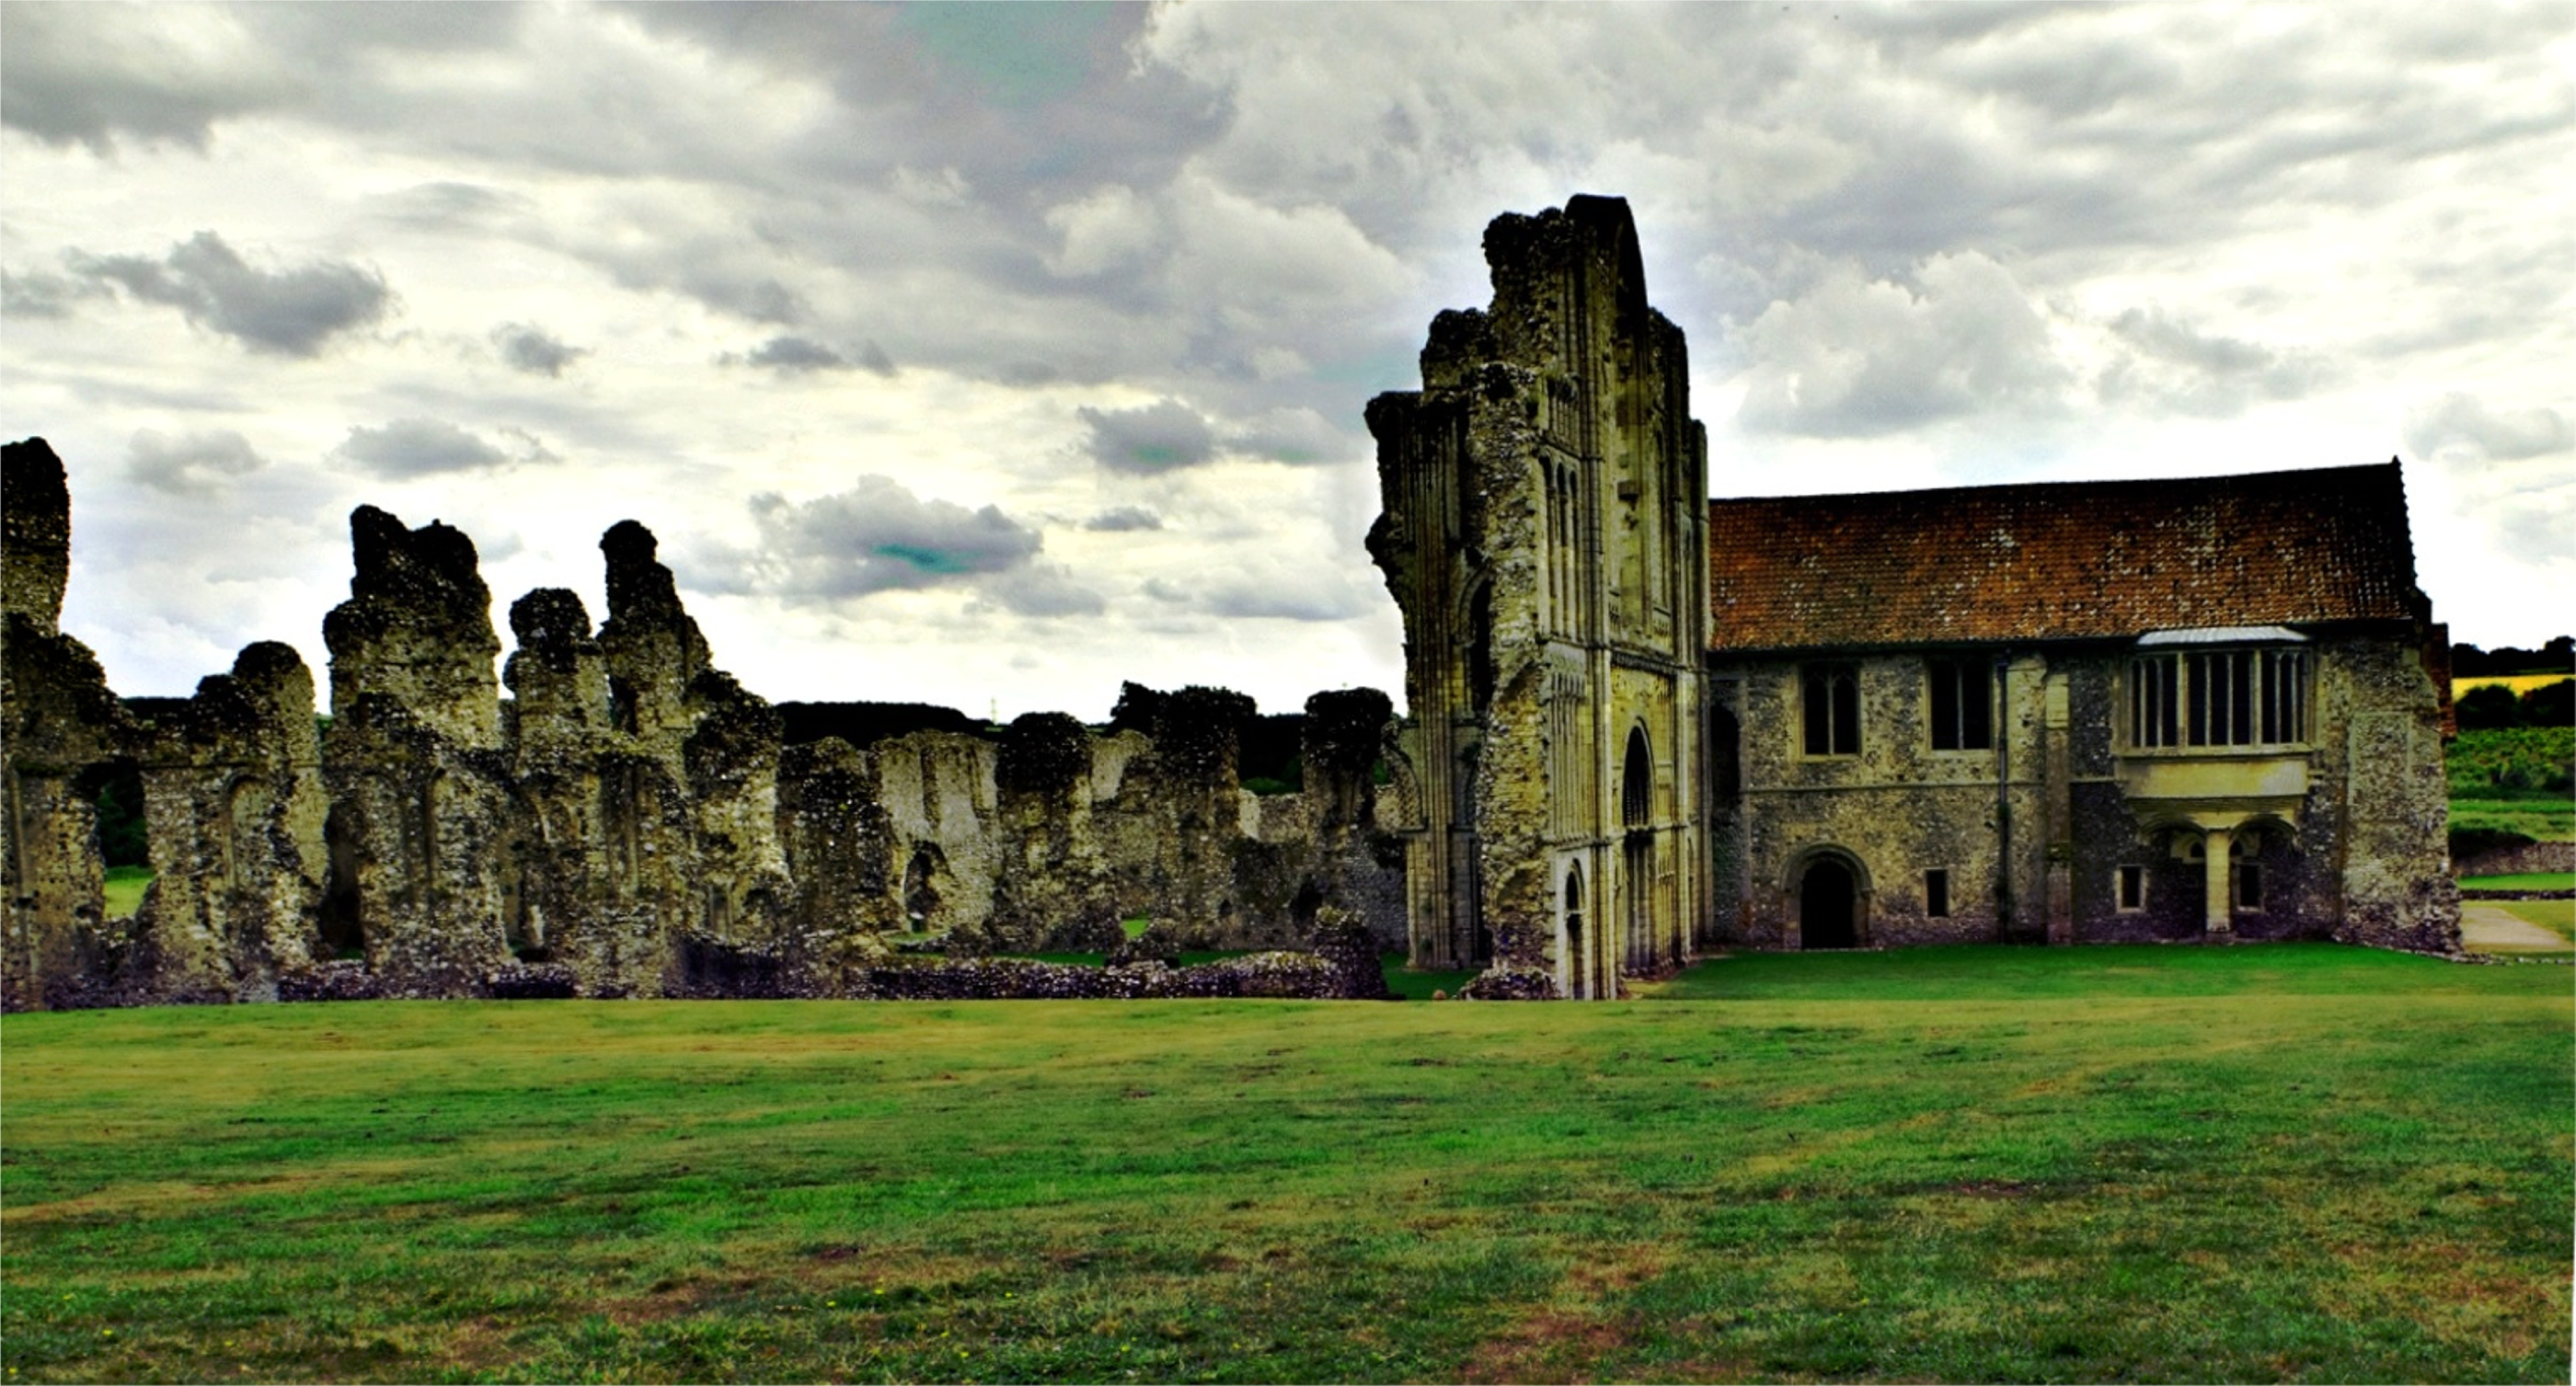 Castle acre priory sits ruined on a cloudy english day